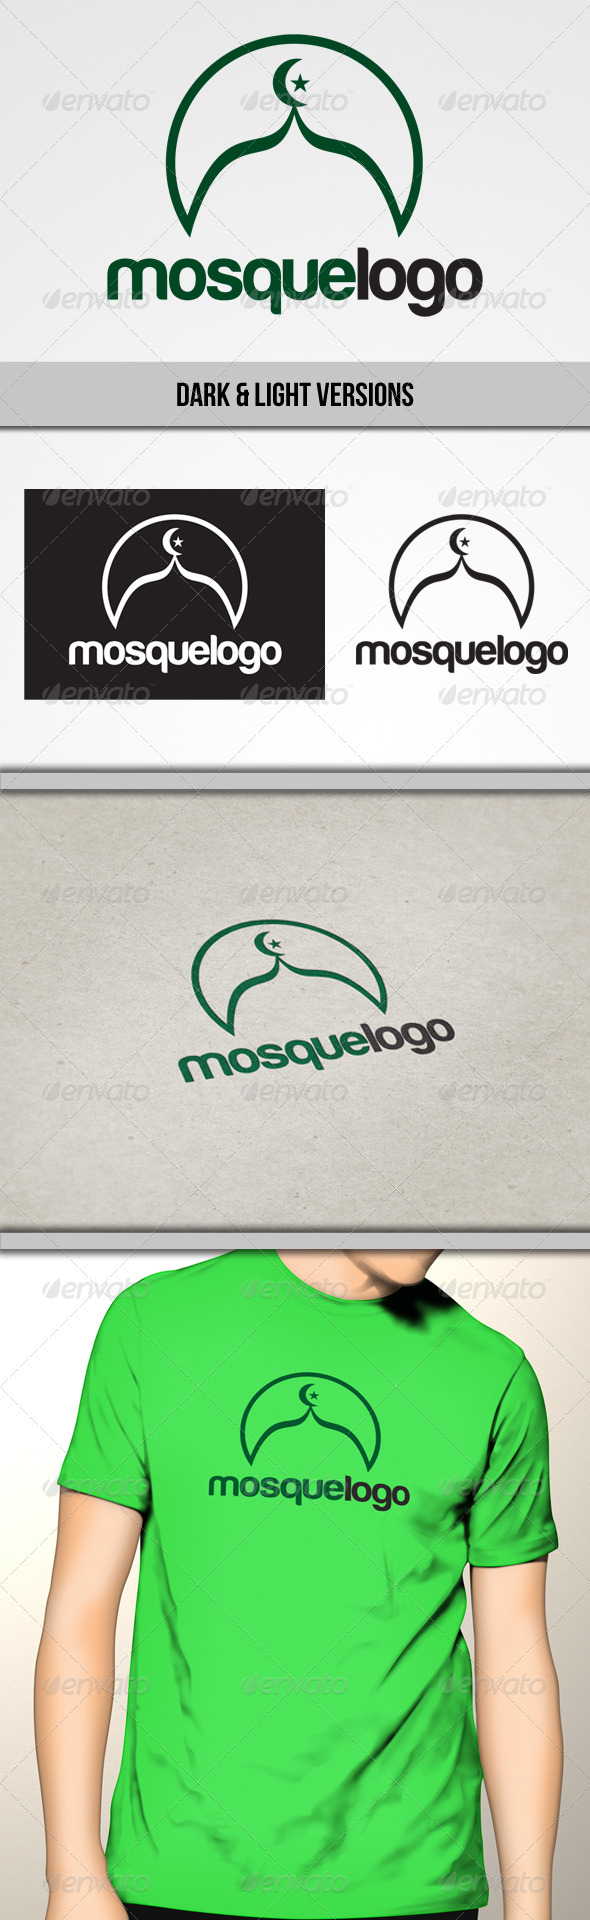 GraphicRiver Mosque logo 5136401